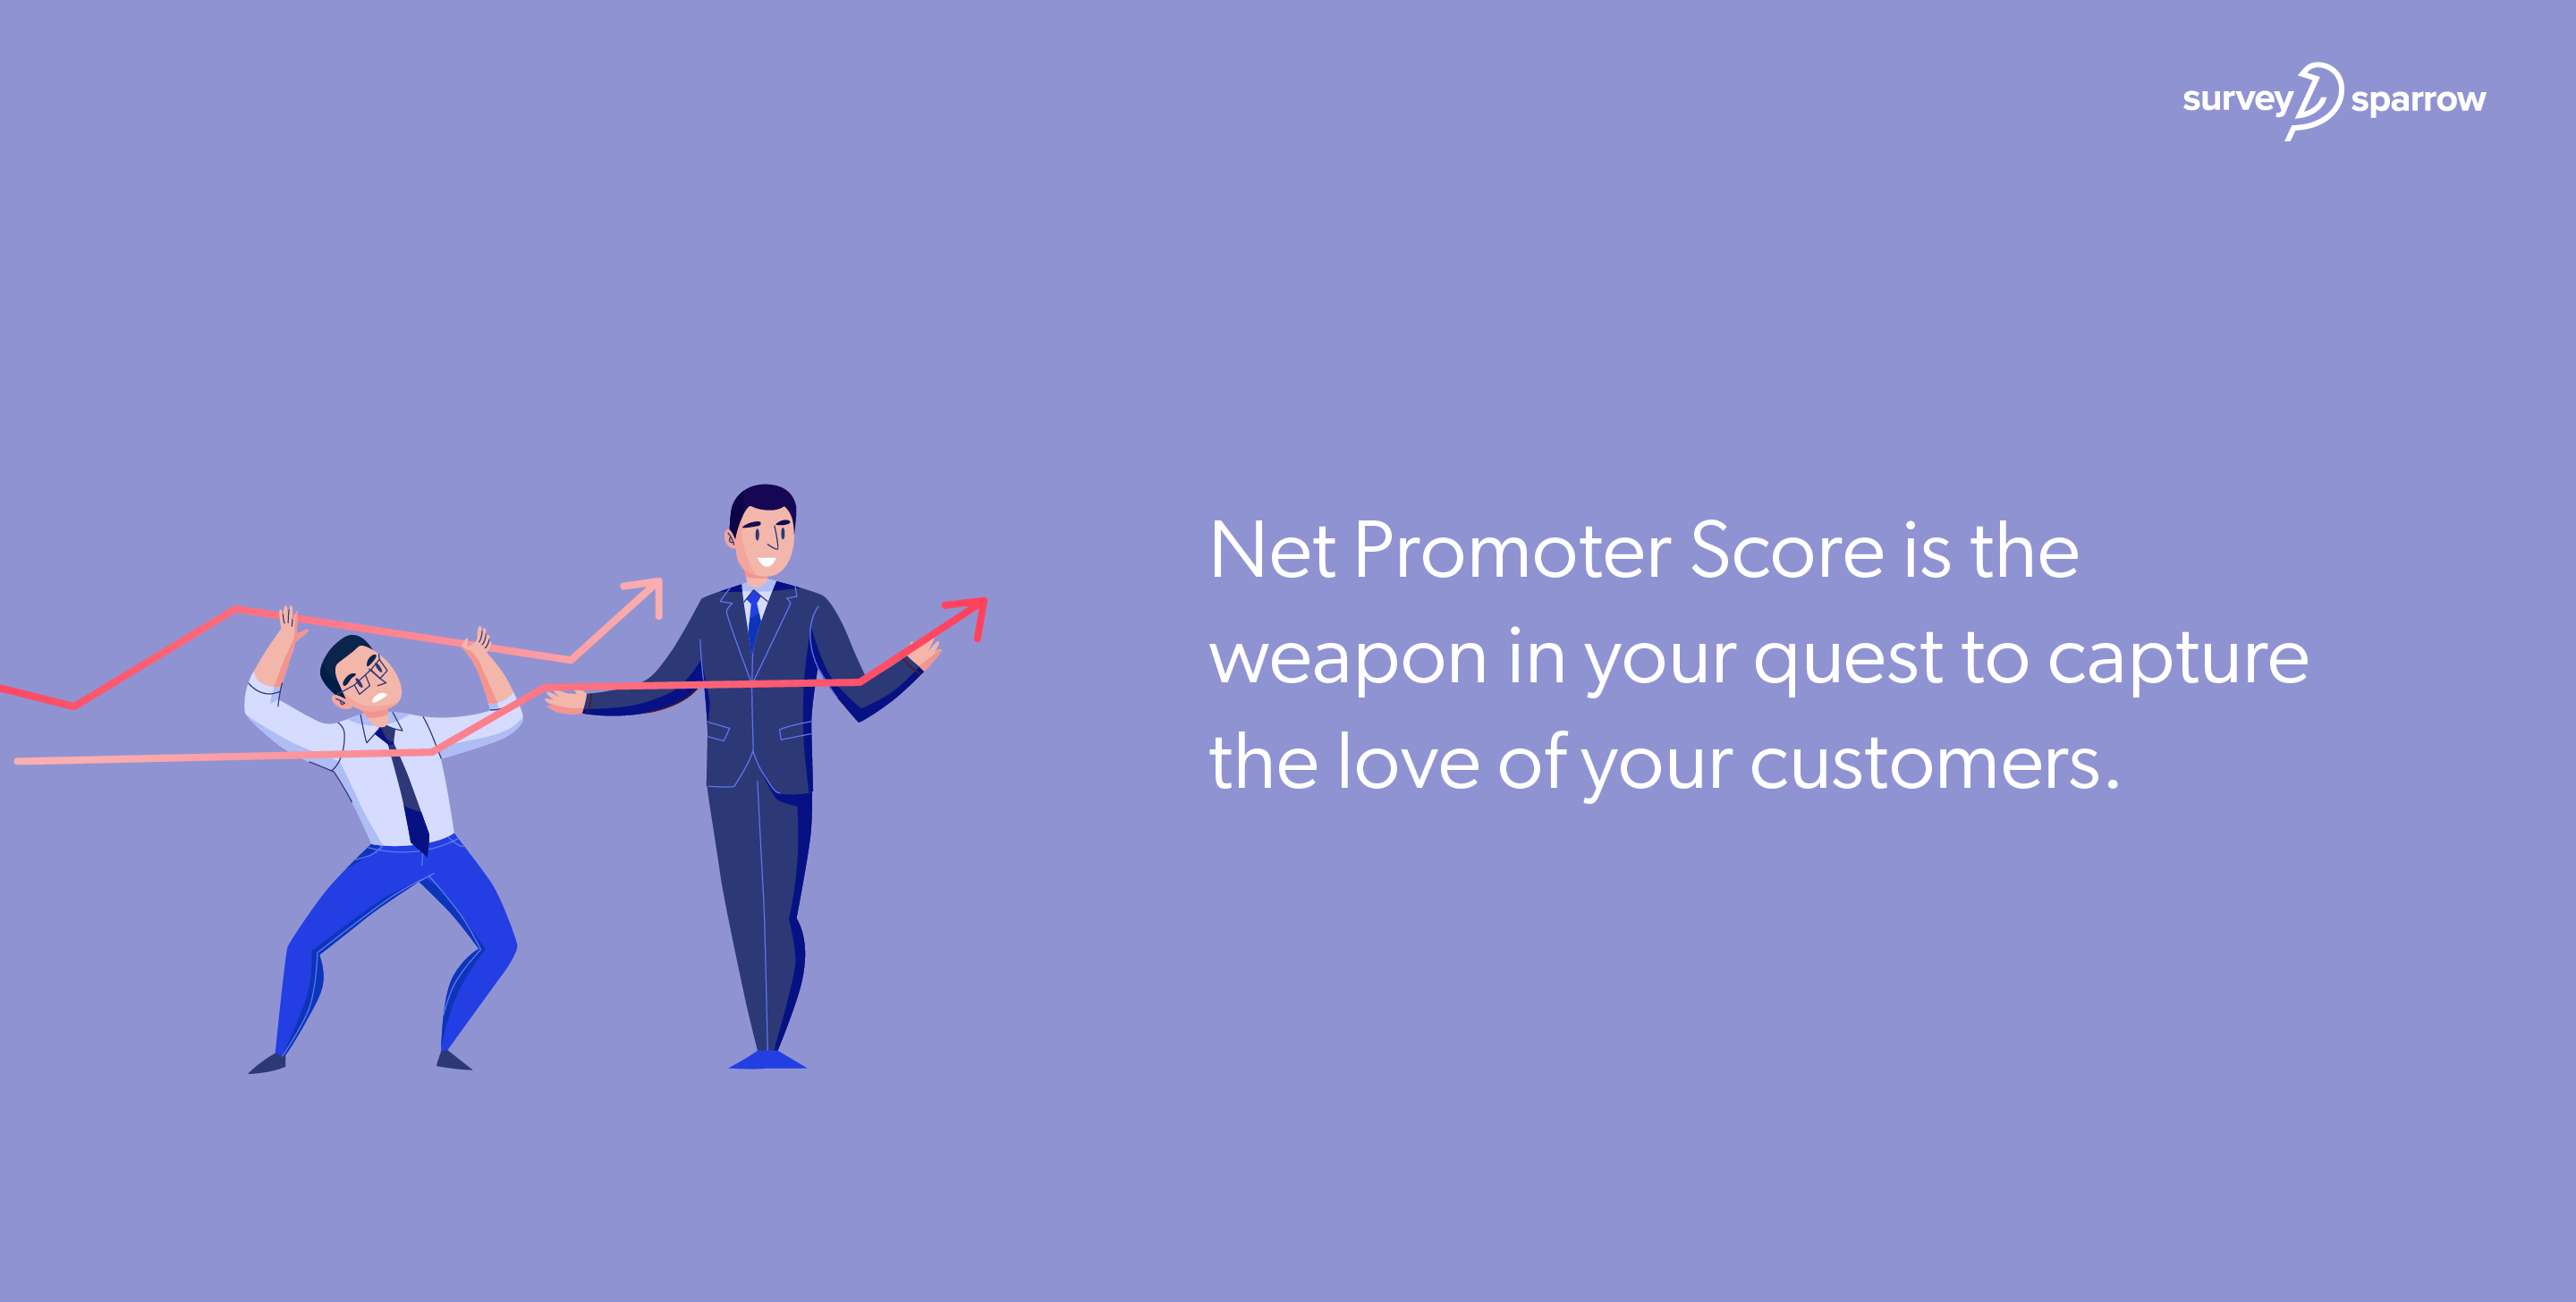 Net Promoter Score is the weapon in your quest to capture the love of your customers.